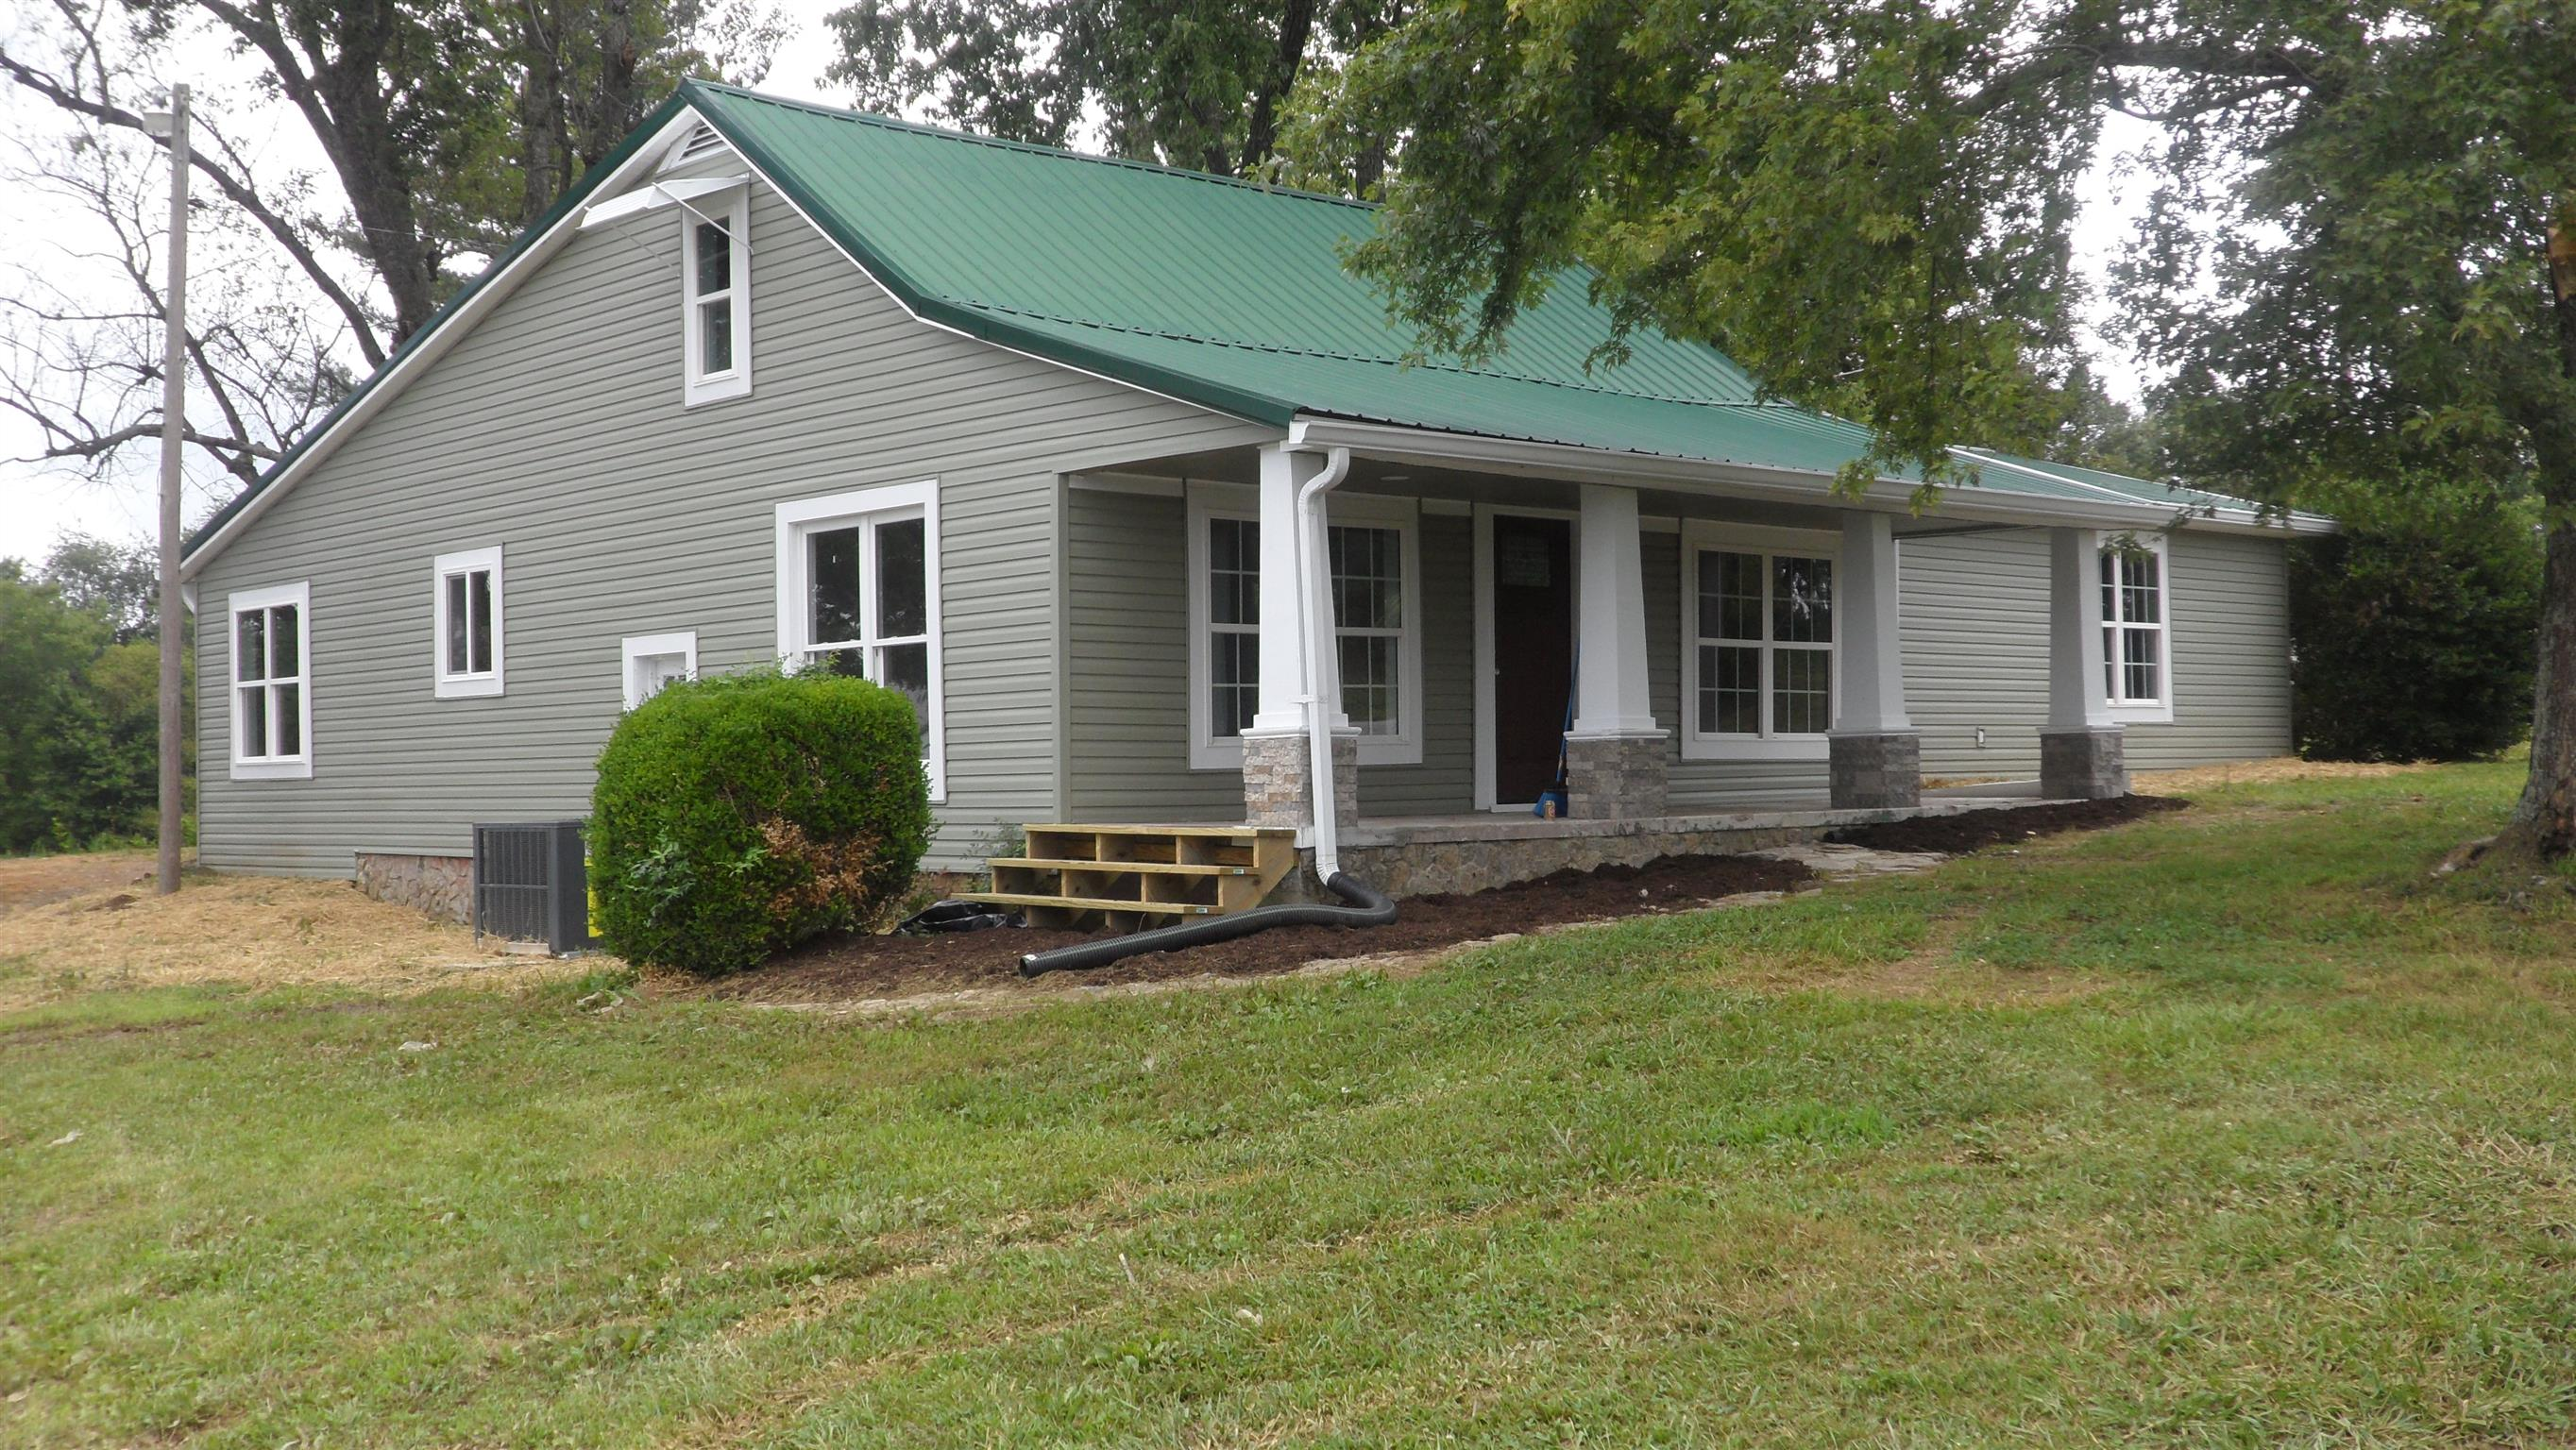 4588 Bluff Springs Rd, McMinnville, TN 37110 - McMinnville, TN real estate listing